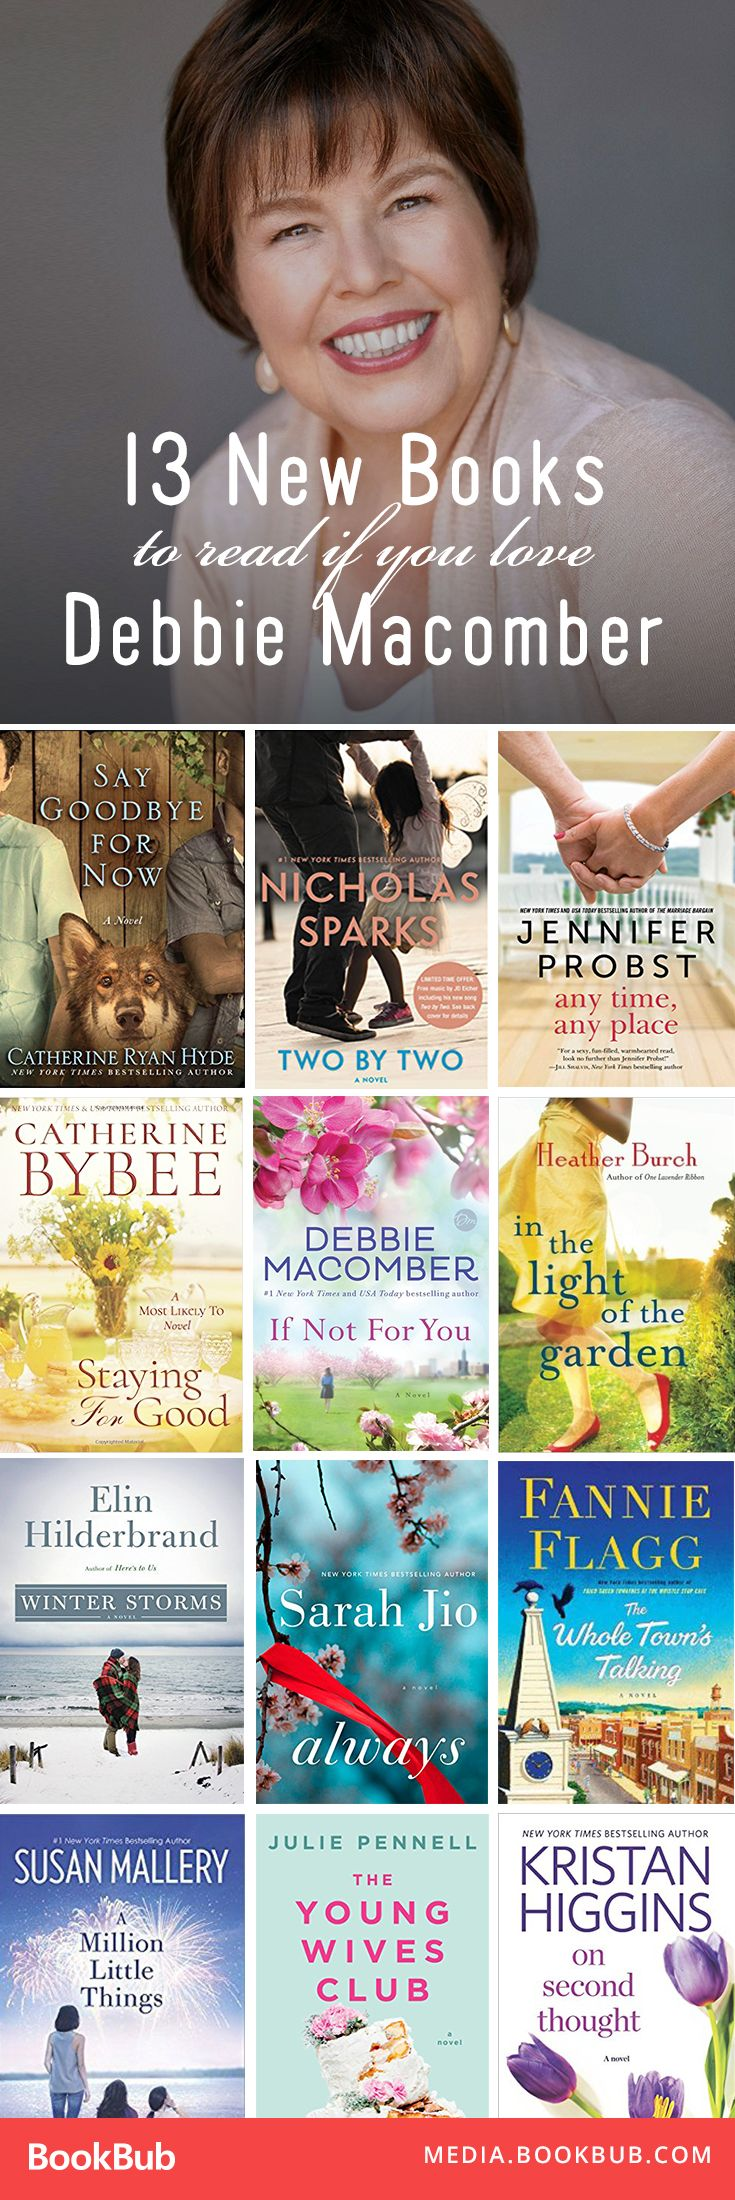 13 books to read if you love Debbie Macomber, including great romance books for women.